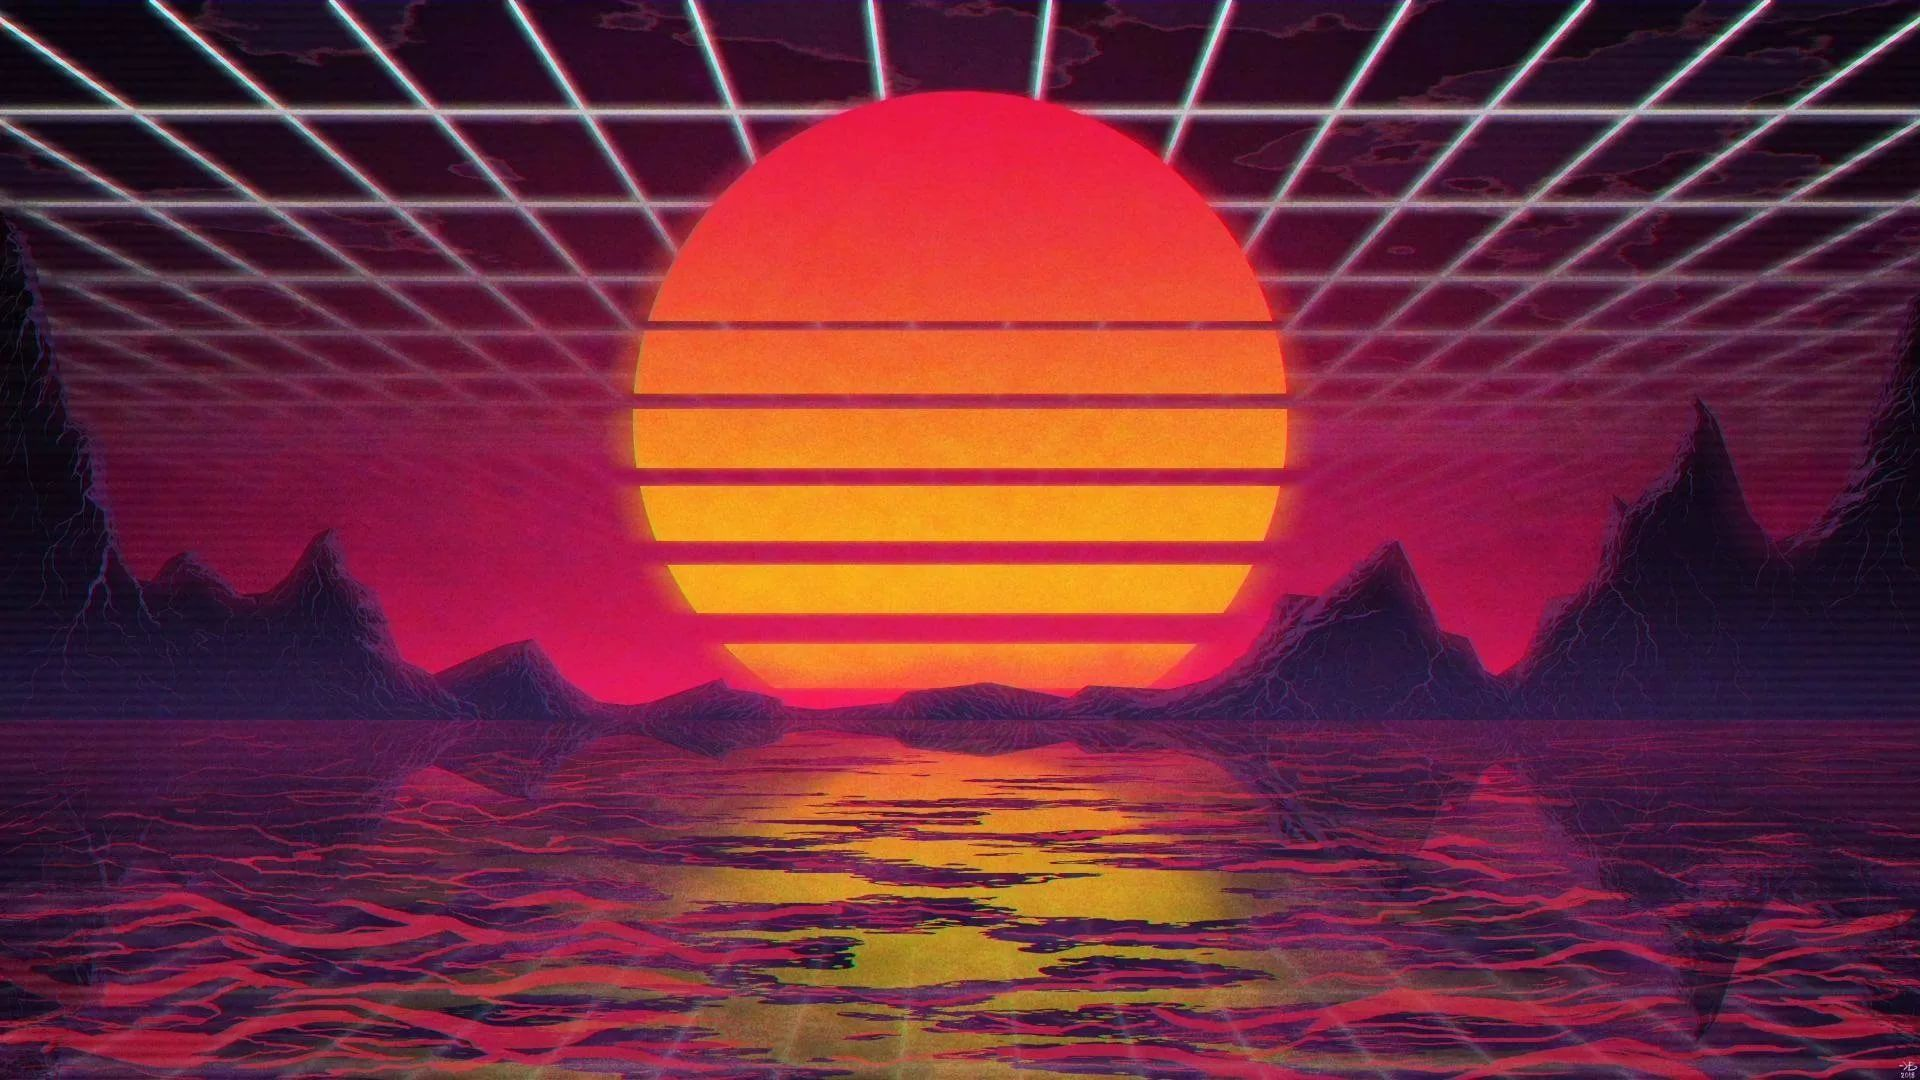 Synthwave wallpaper photo